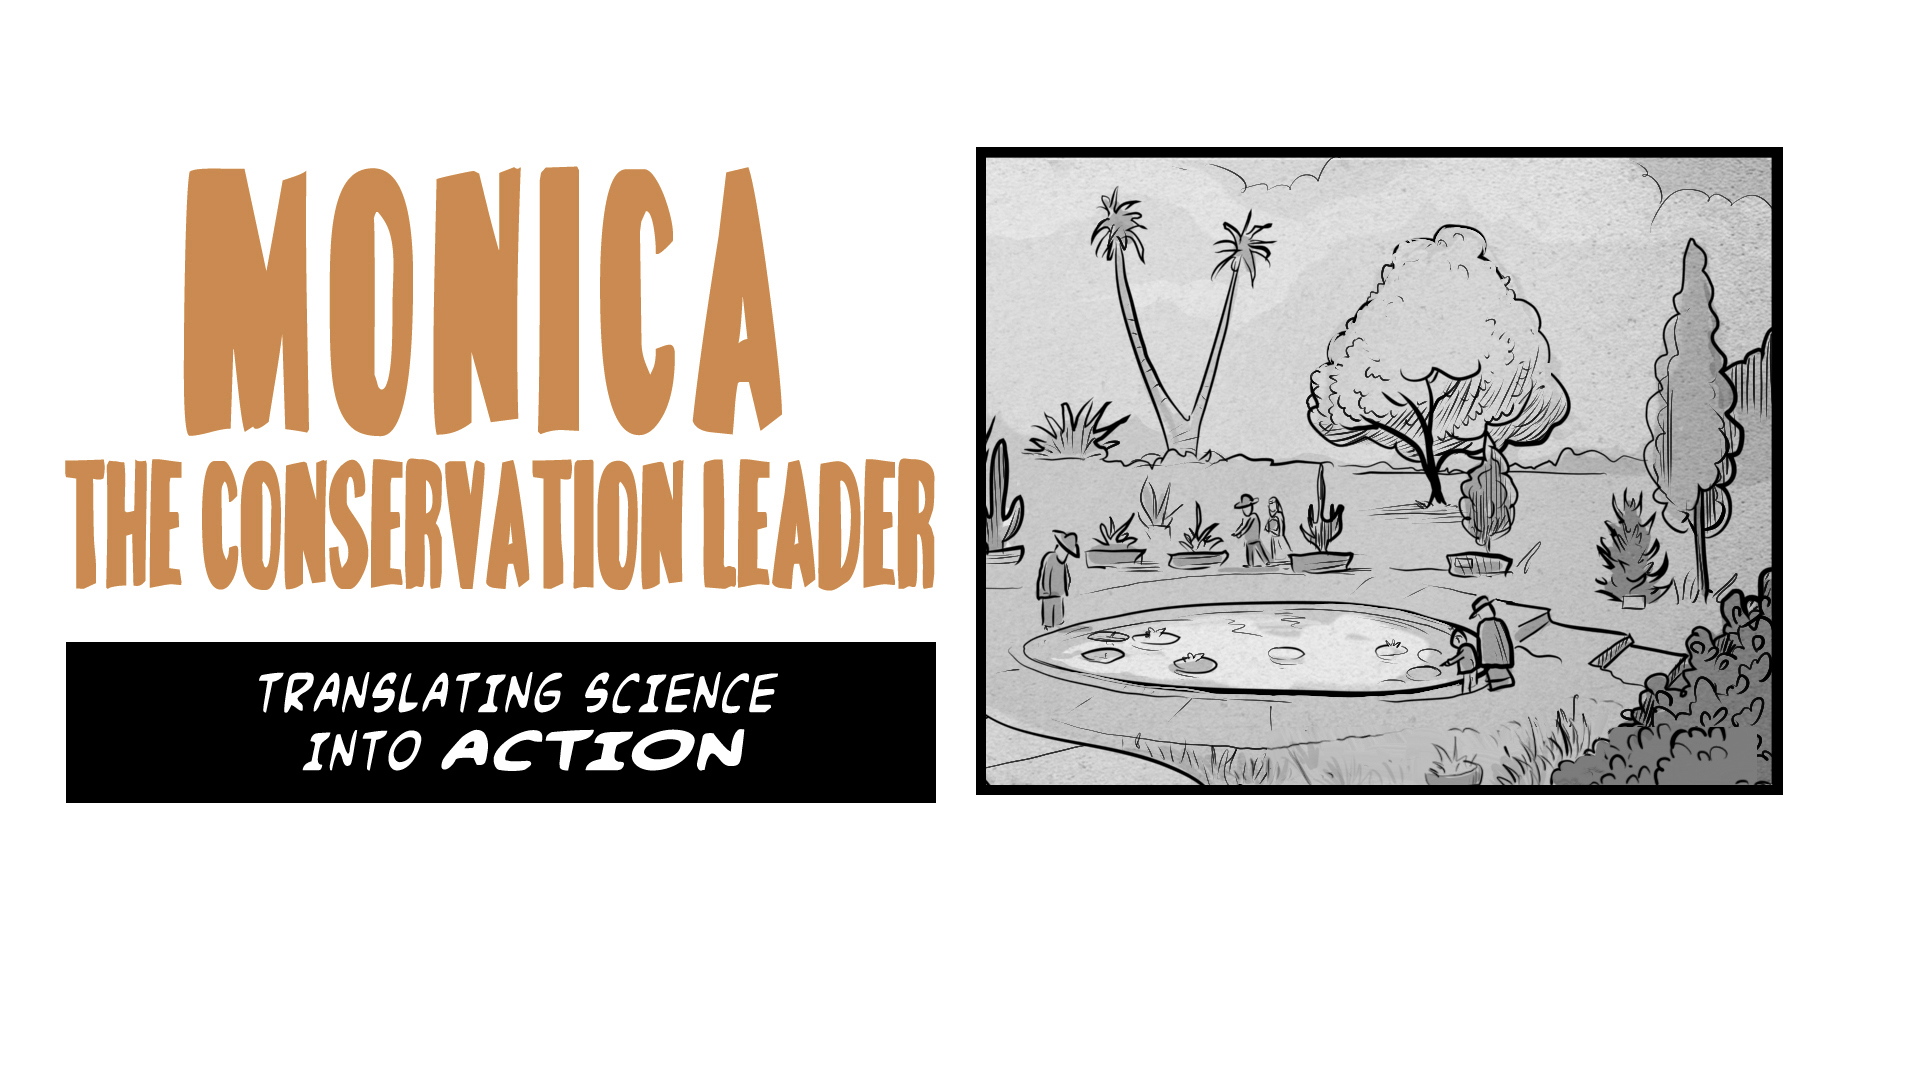 Monica, the Conservation Leader. Translating science into action